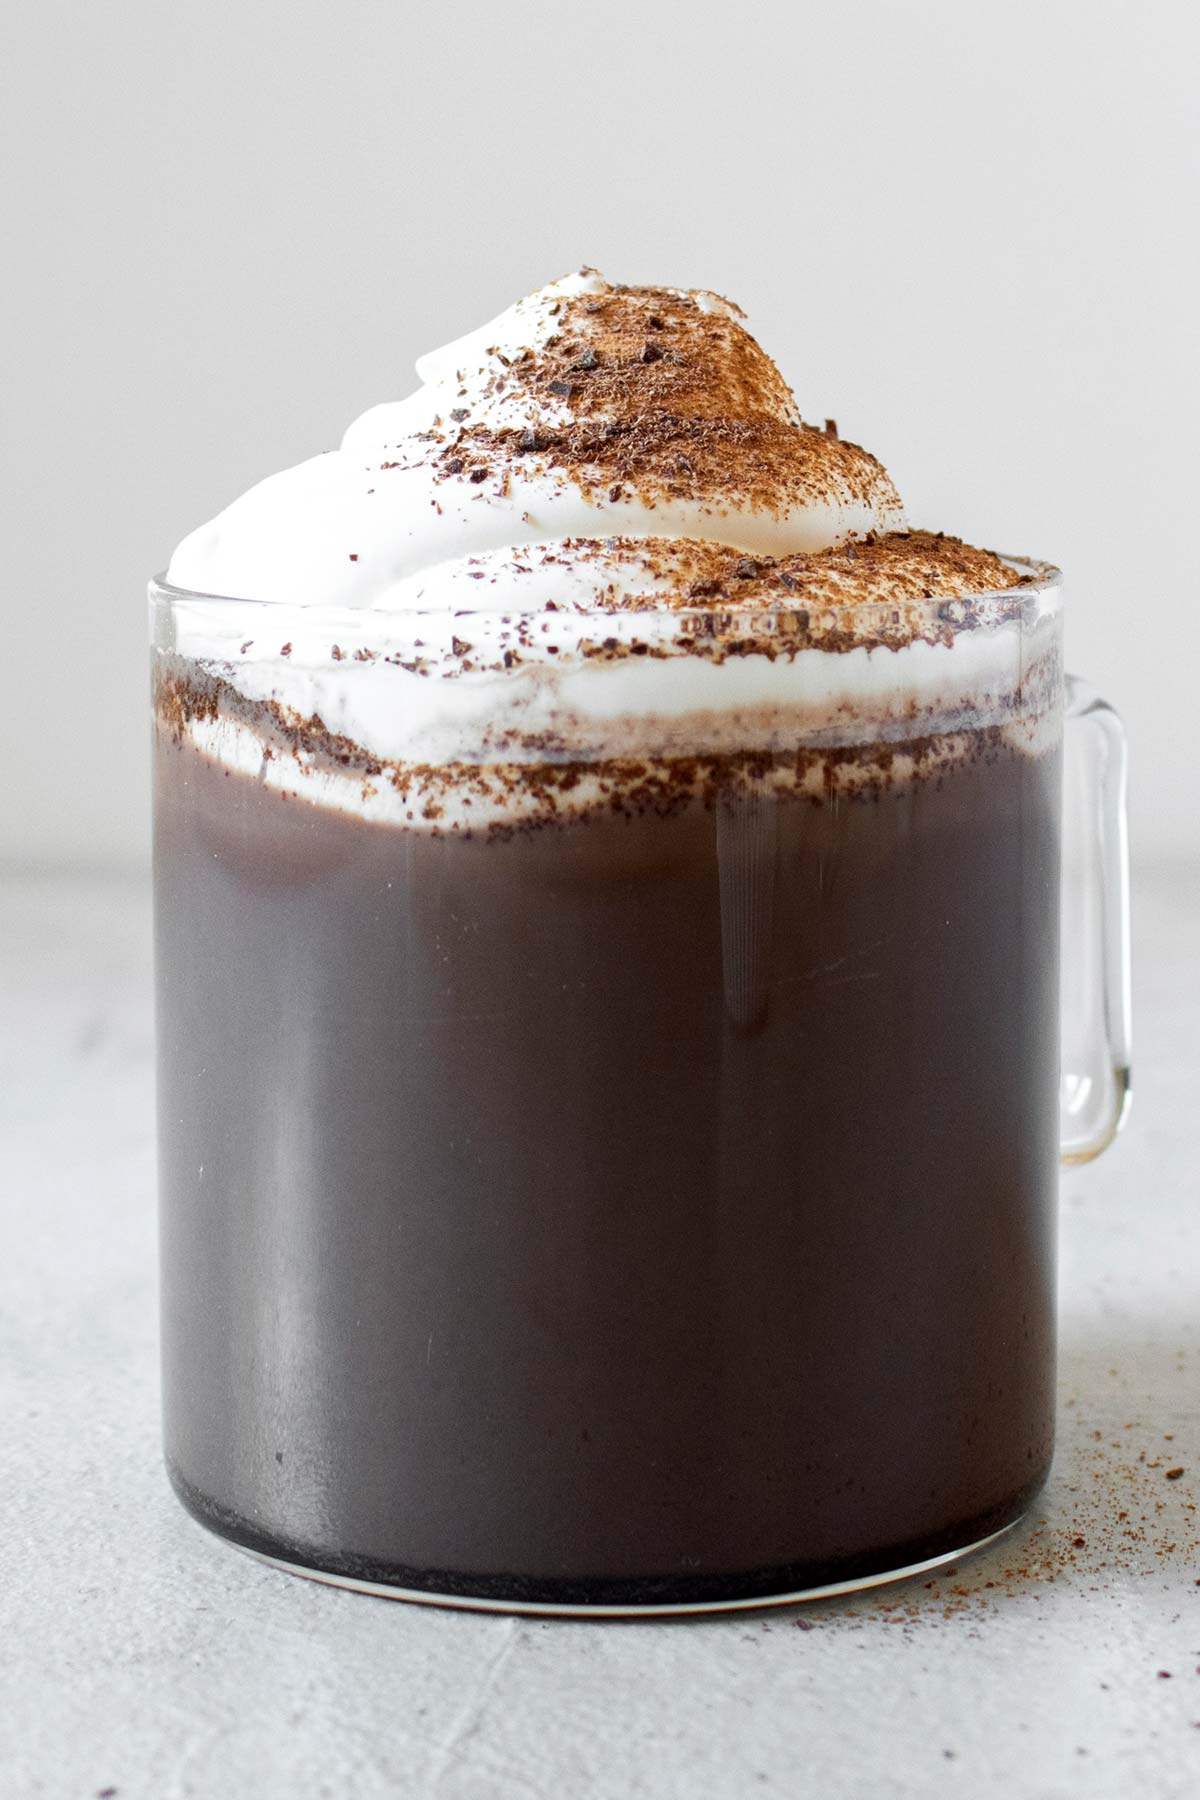 Mexican hot chocolate in a glass cup with whipped cream, garnished with grated chocolate and ground cinnamon.